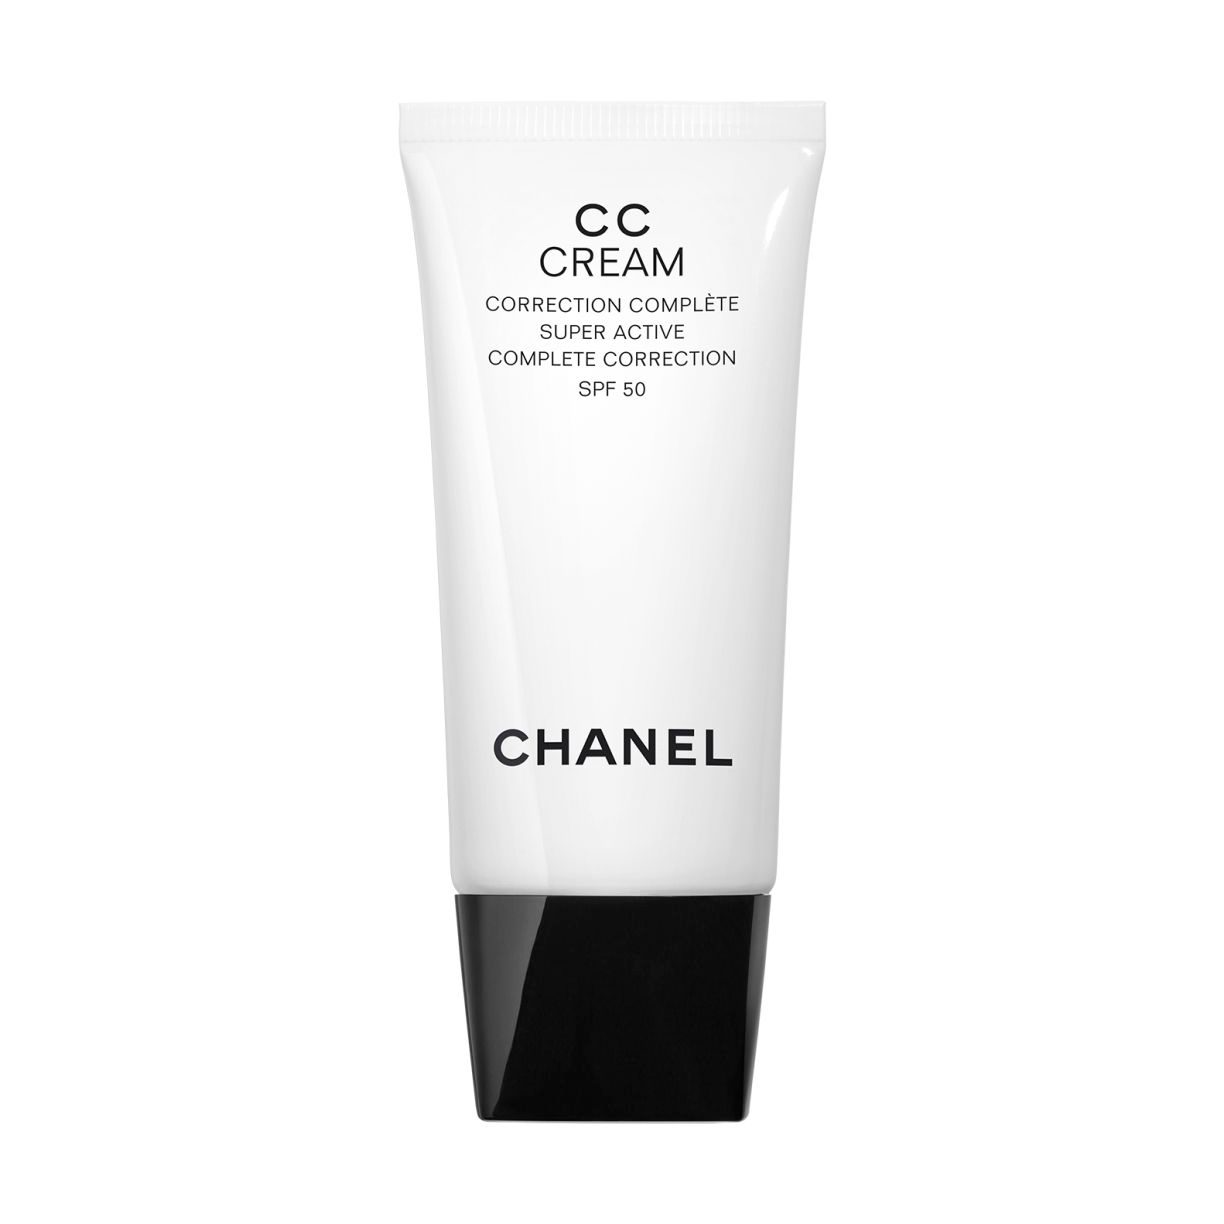 CC CREAM CORRECTION COMPLÈTE SUPER ACTIVE SPF 50